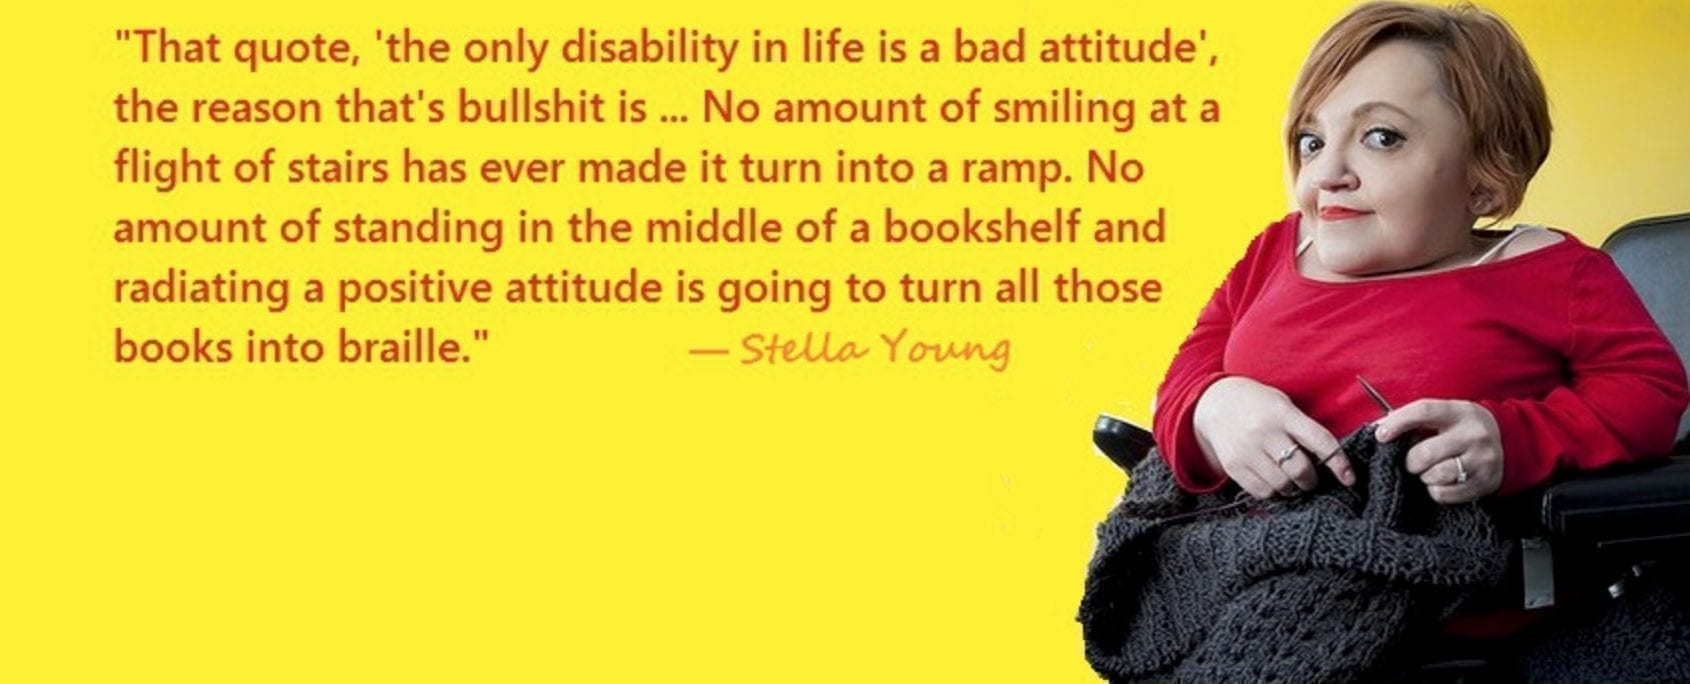 "yellow background with image of a woman sitting in a wheelchair with red hair, a red shirt and an intelligent gleam in her eye. The text reads, ""that quote, 'the only disability in life is a bad attitude:' the reason that's bullshit is... No amount of smiling at a flight of stairs has ever made it turn into a ramp. No amount of standing in the middle of a bookshelf and radiating a positive attitude is going to turn all those books into braille."" - stella young"